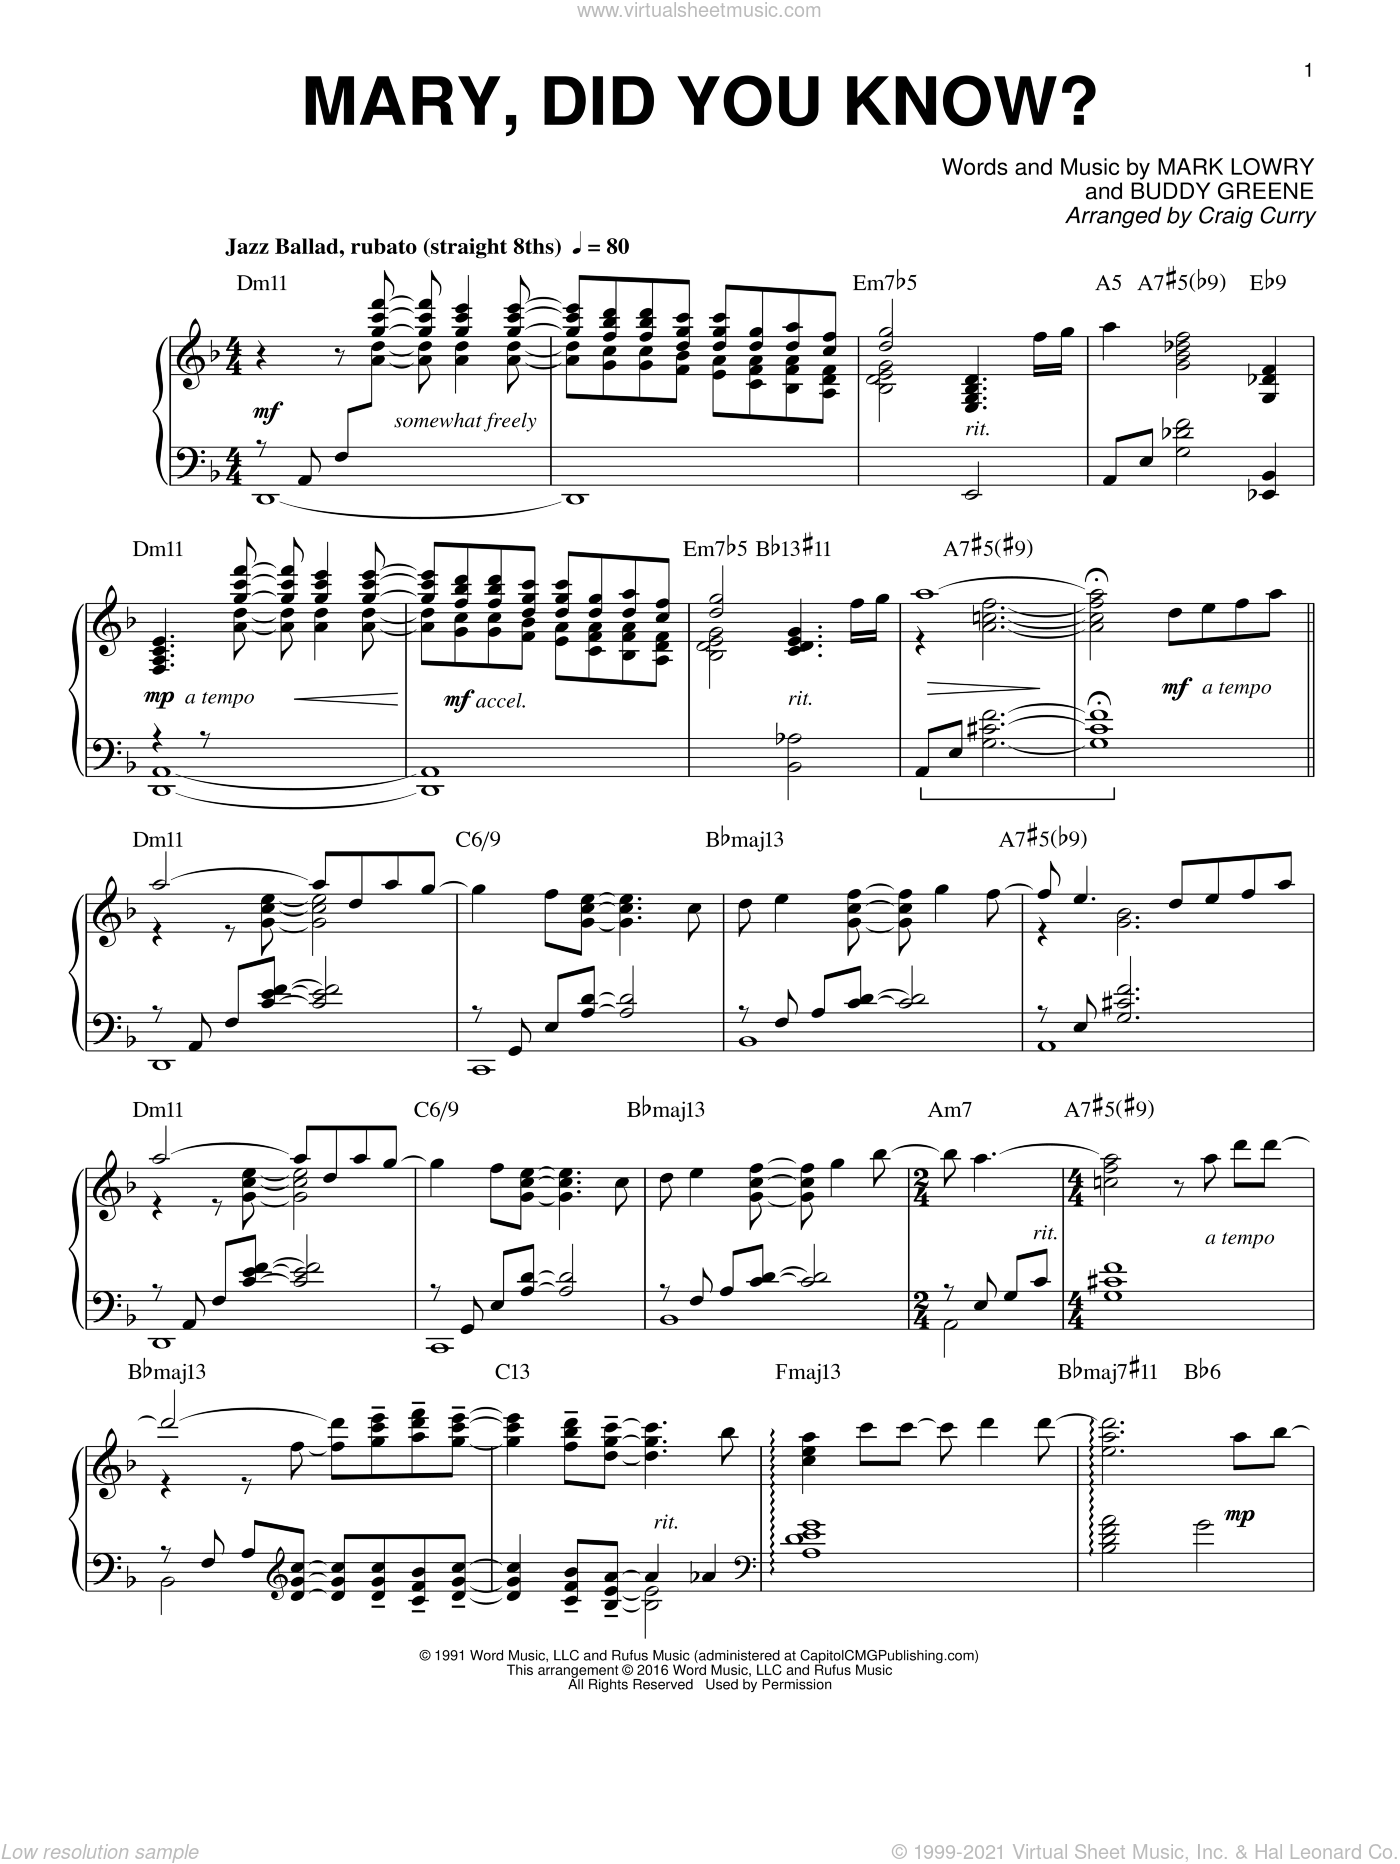 Mary, Did You Know? sheet music for piano solo by Mark Lowry, Craig Curry and Buddy Greene, intermediate skill level